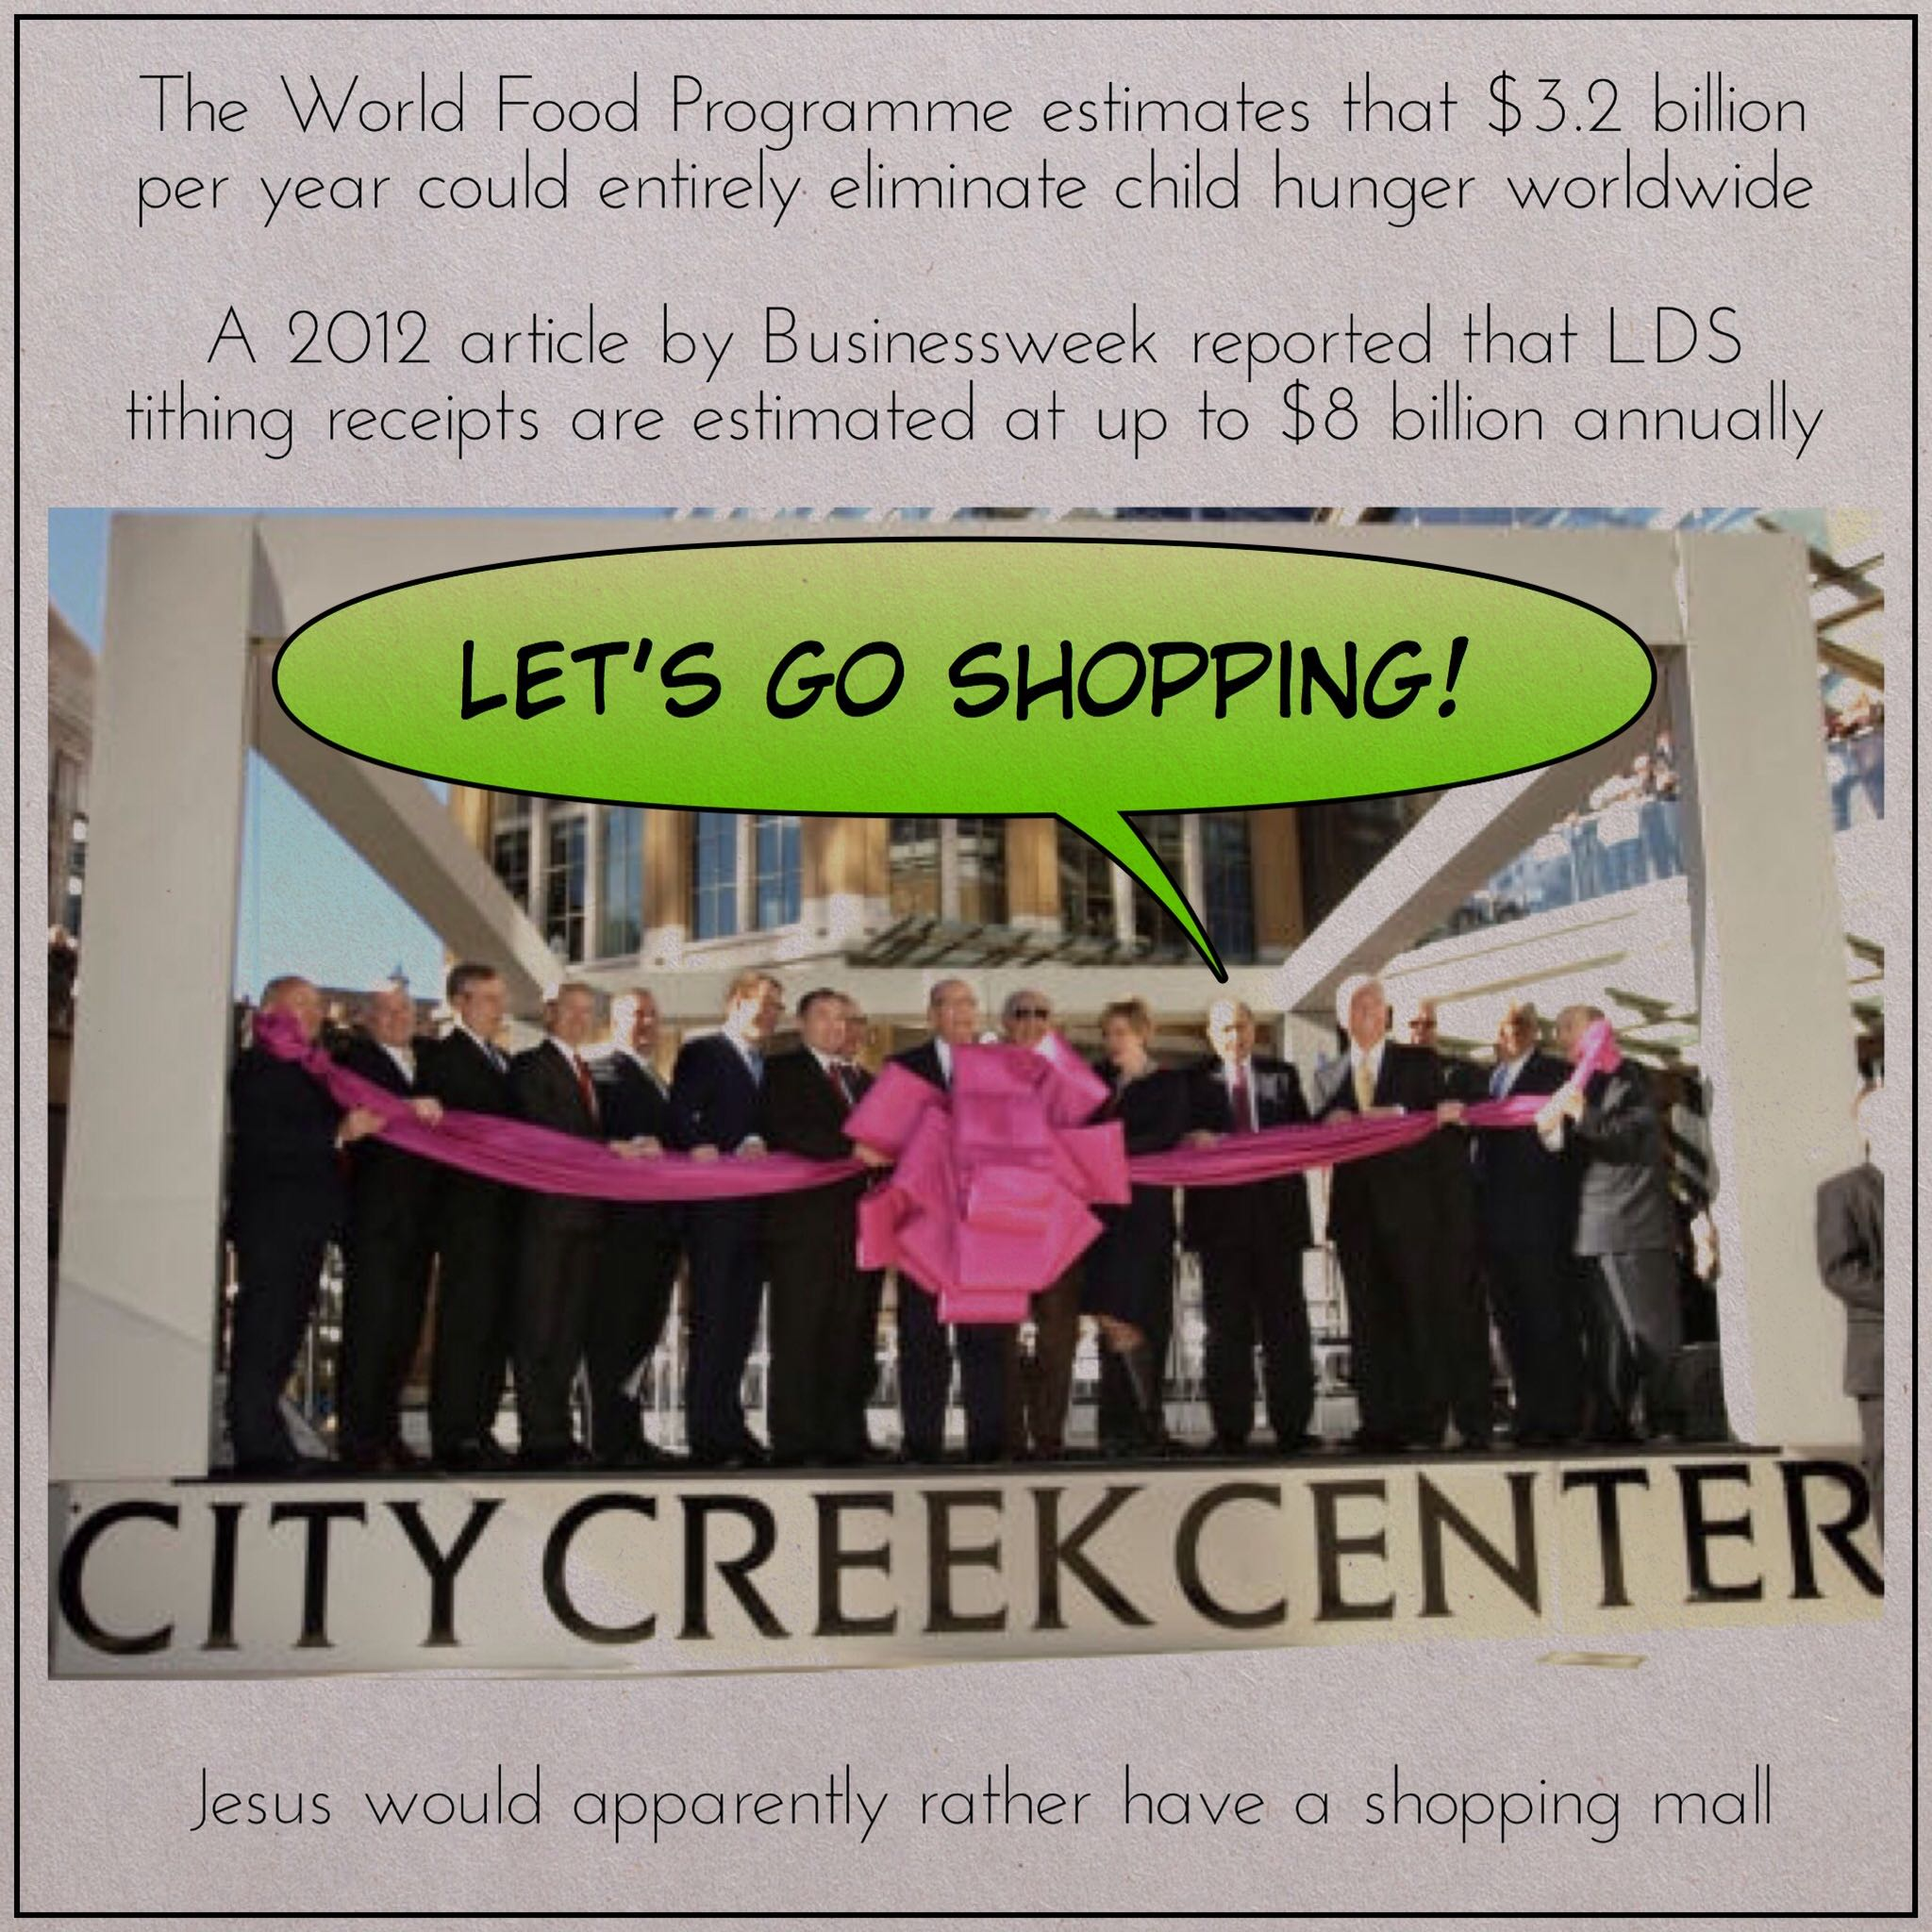 Jesus wants a mall